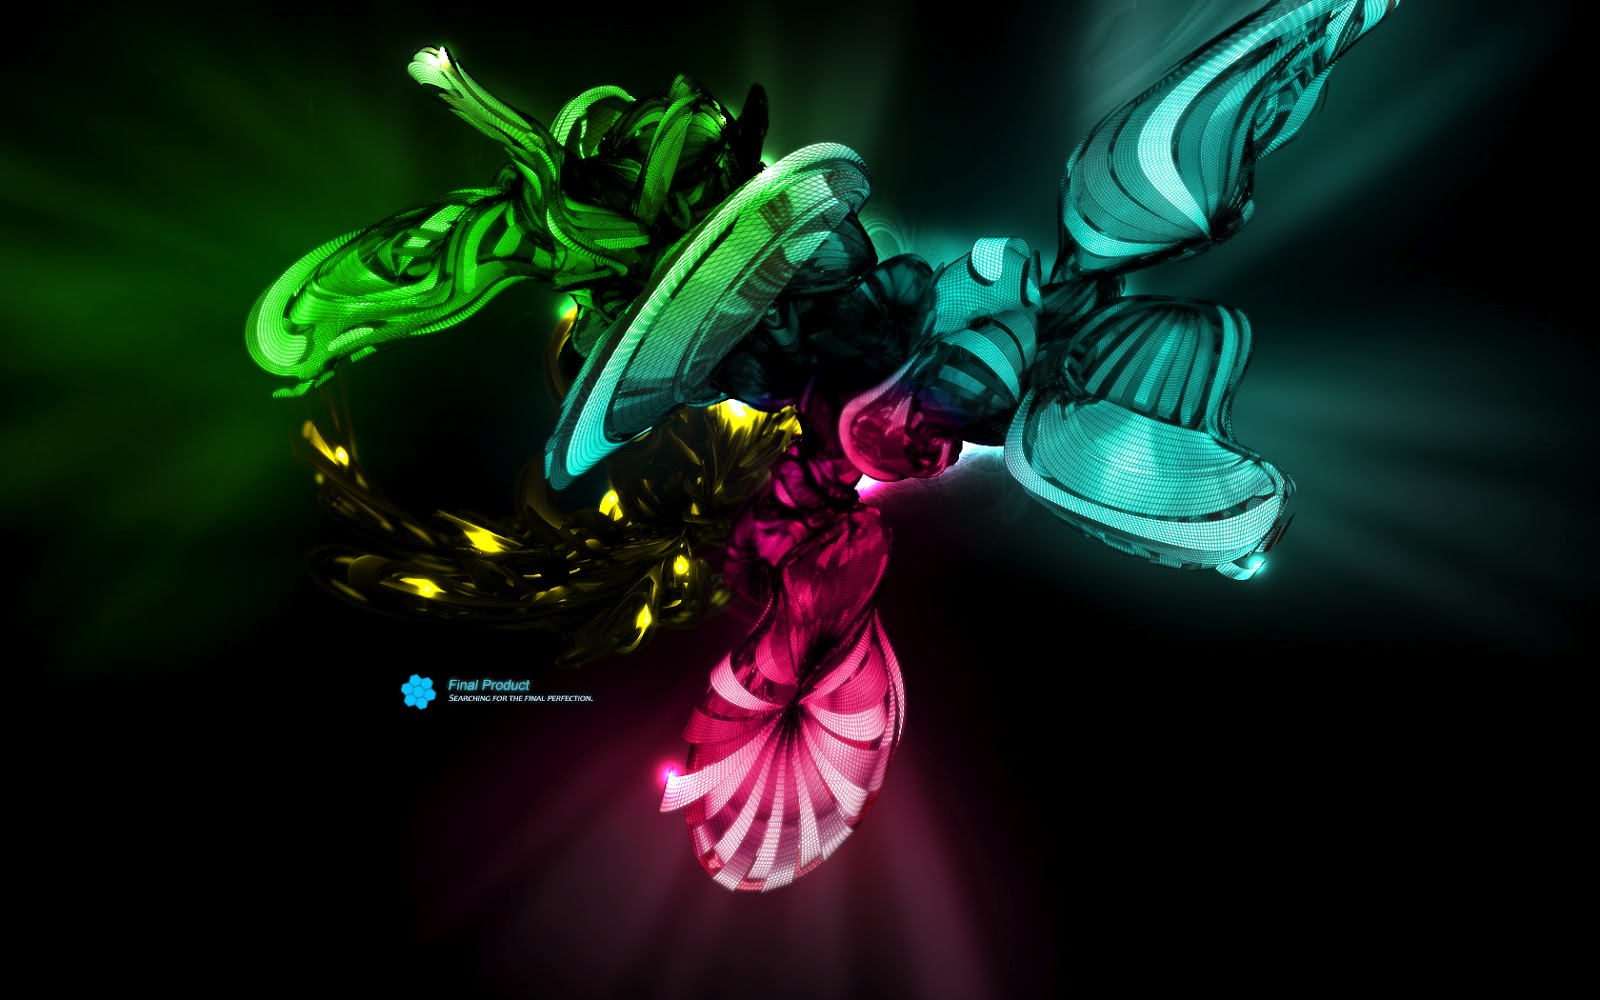 Image Gallary 3: Beautiful cool abstract wallpaper designs